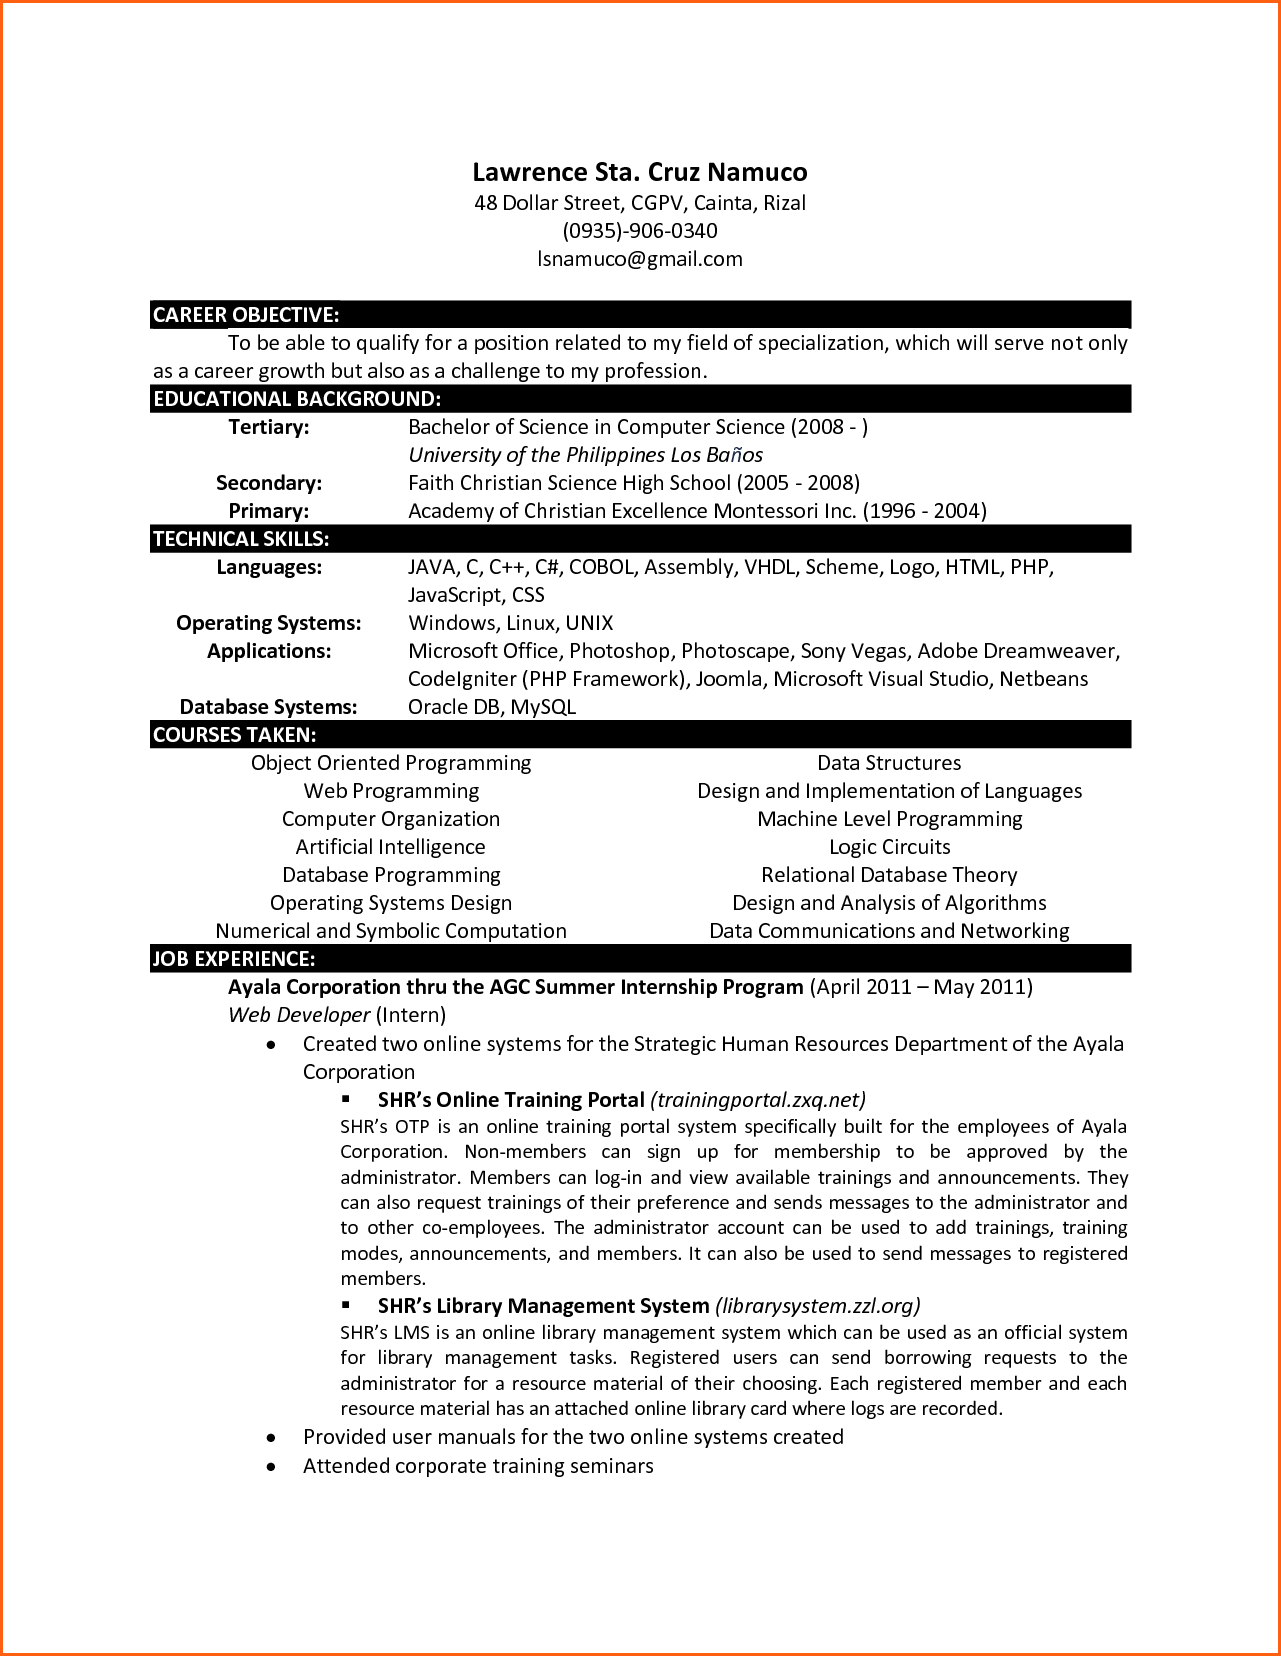 computer science resume format Korestjovenesambientecasco